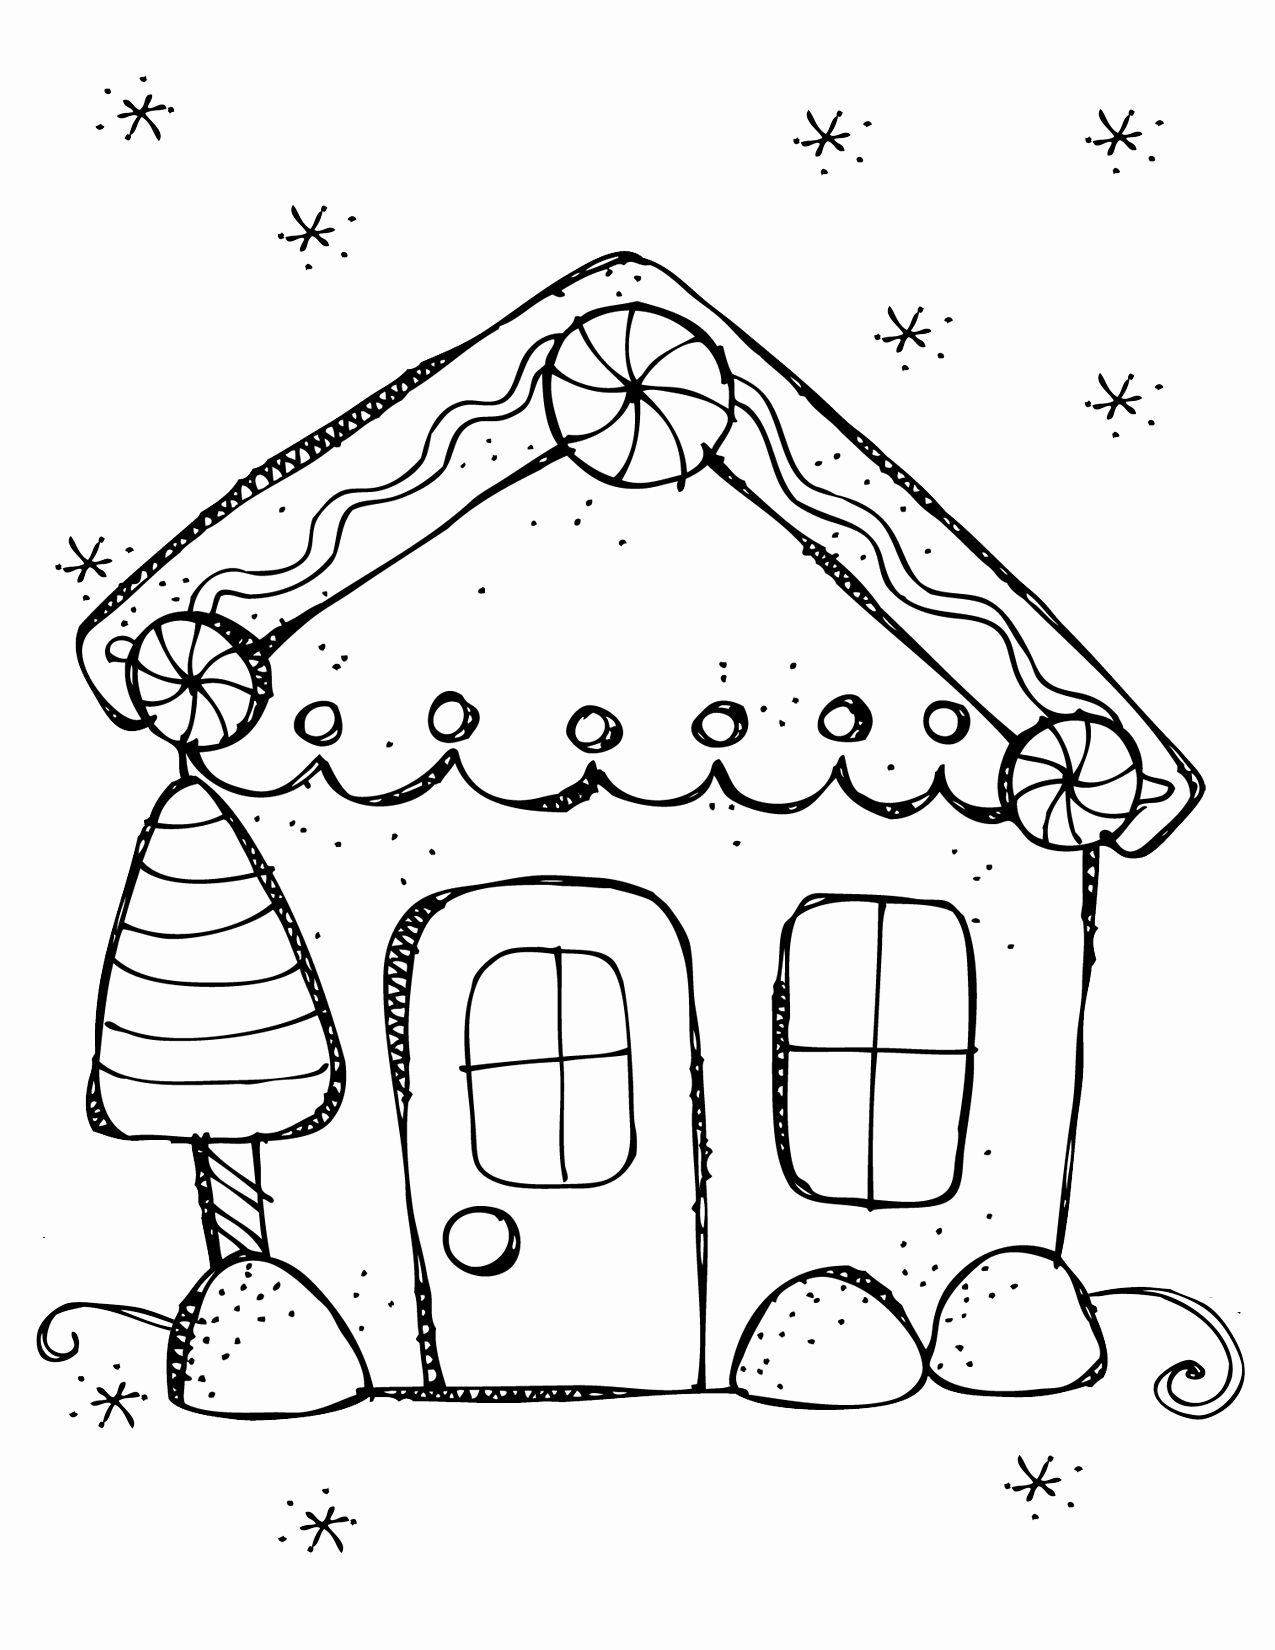 Simple House Coloring Pages At Getcolorings